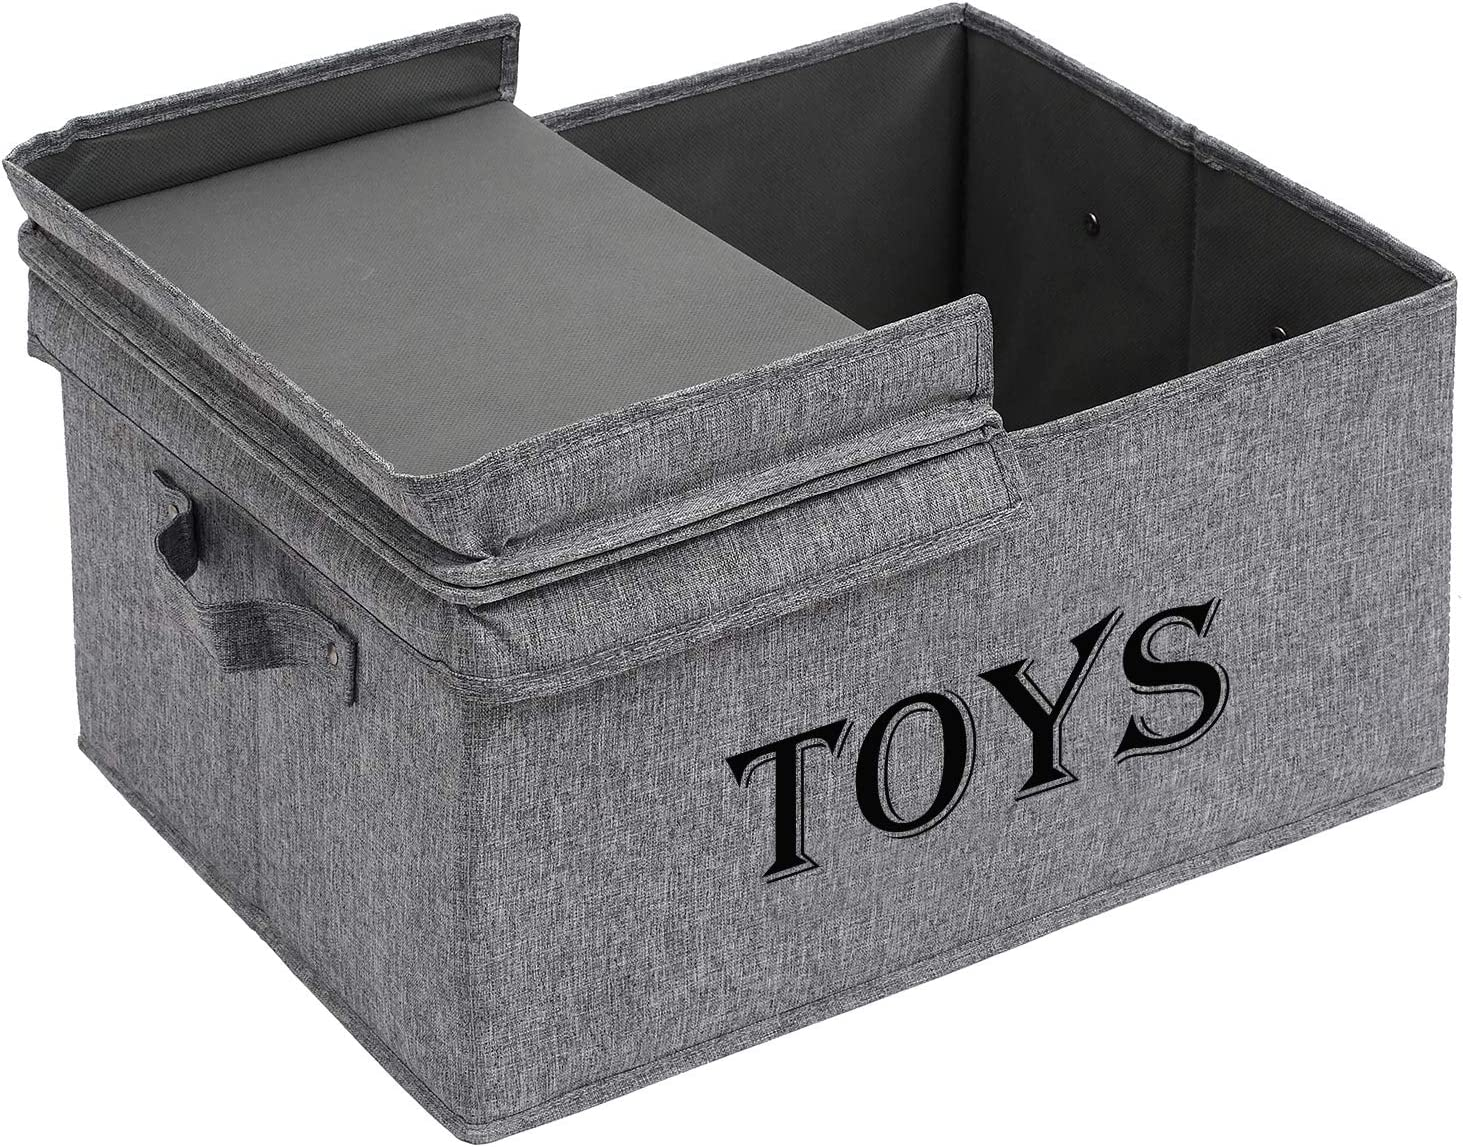 Playroom Large Collapsible Toys Bin with lid for Children /& Dog Toys Xbopetda Toy Storage Organizer Chest for Kids /& Living Room Nursery Closet etc Great Box for Boys and Girls-Snow Gray